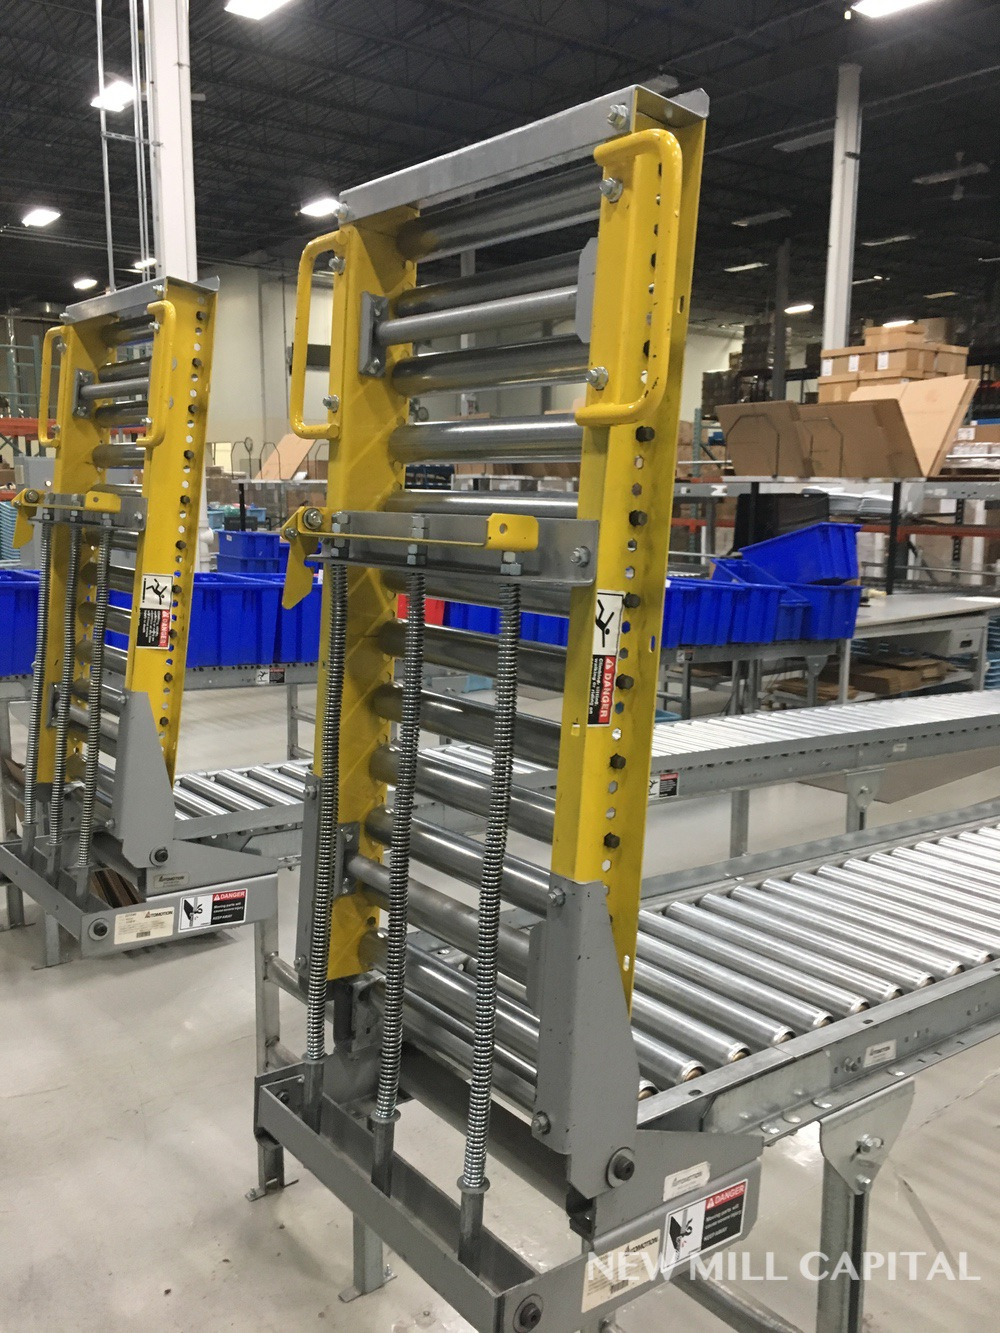 Lot 55 - Spring Assisted Roller Conveyor & Gate, Approx 20ft OA Length, 15in Wide Rol   Rig Fee: $150